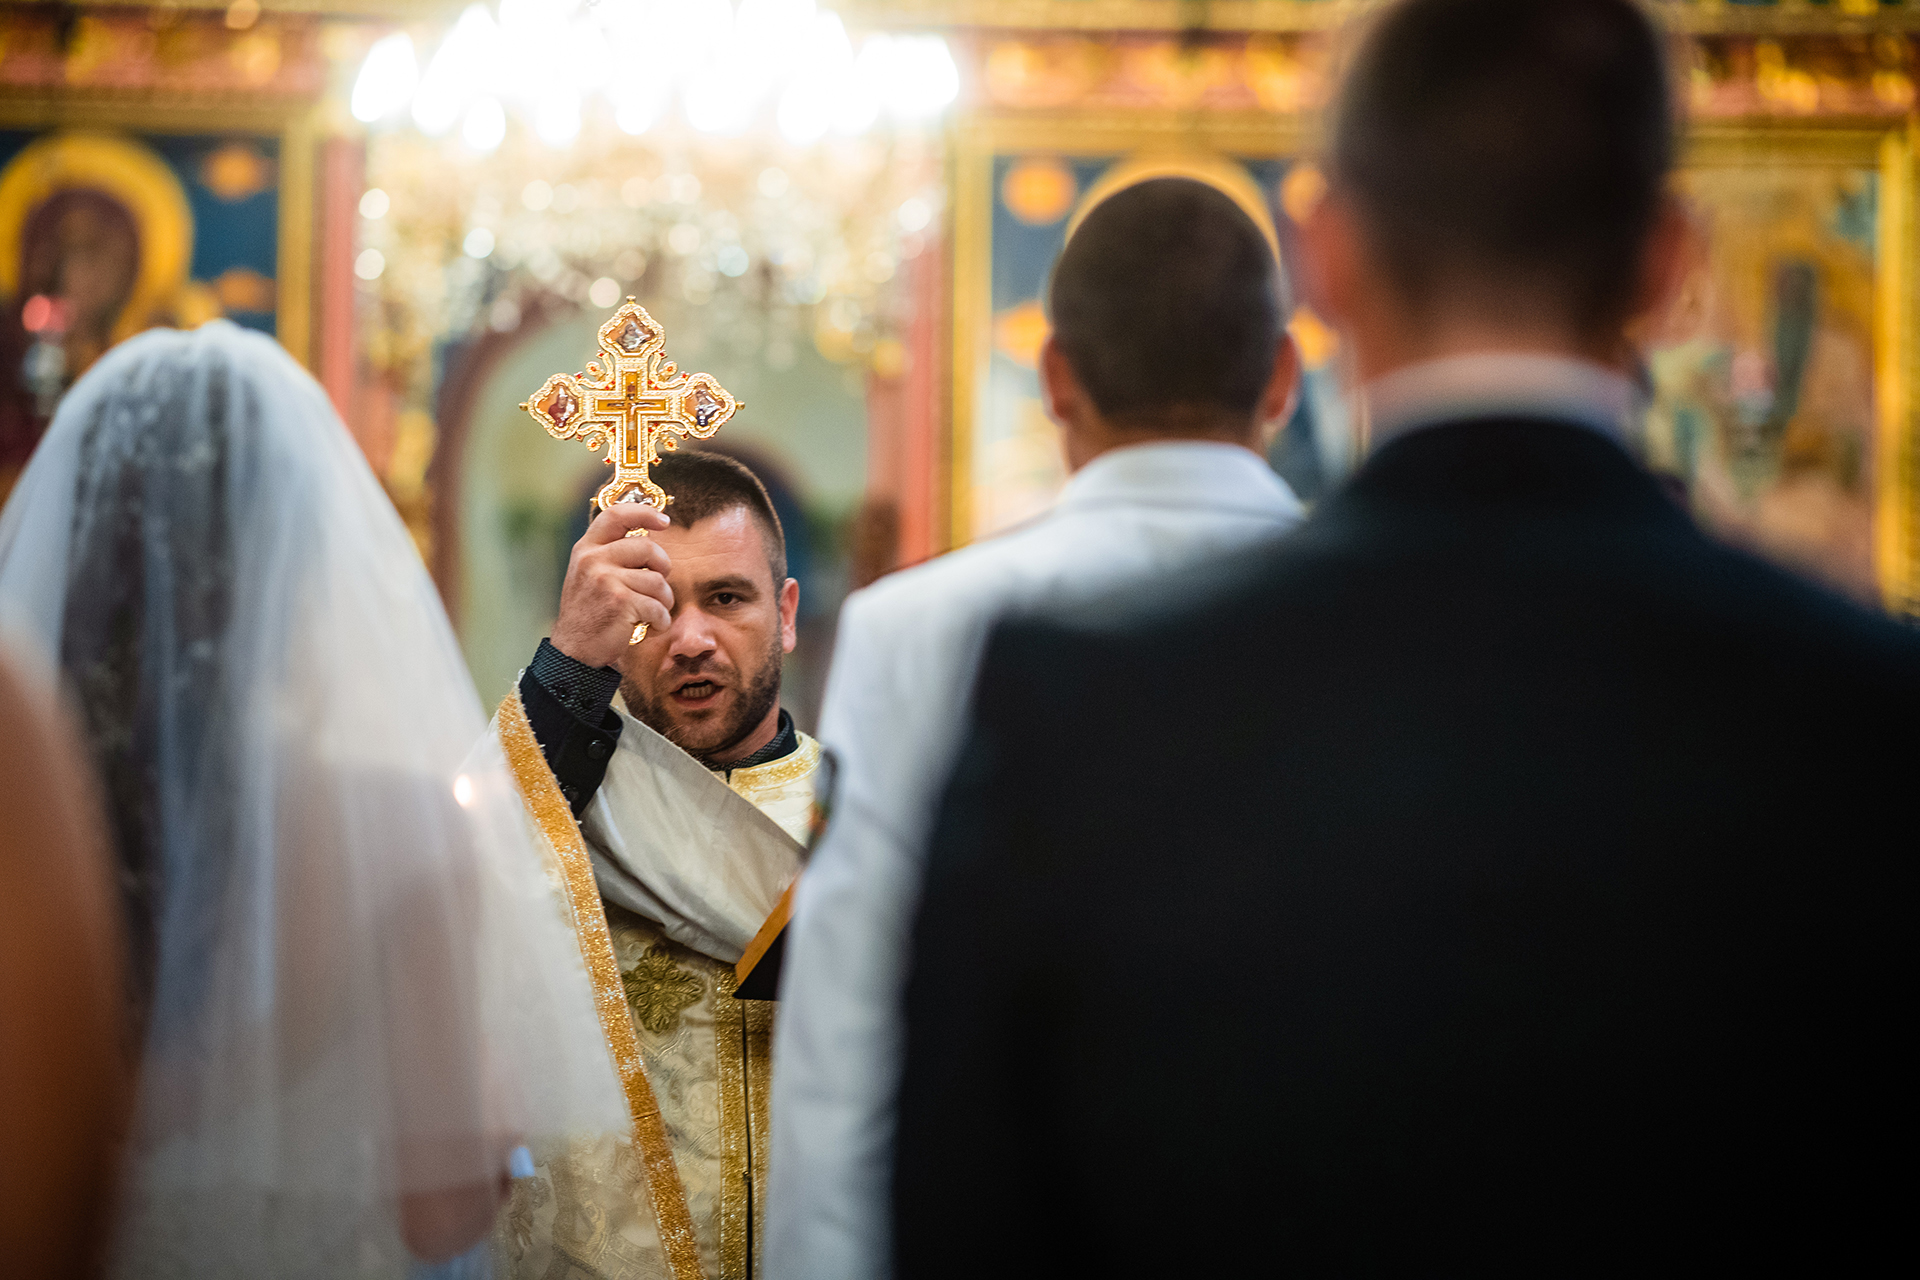 Ruse Wedding Photography from Holy Trinity Cathedral | The priest holds up a cross, and the couple recite their vows before God